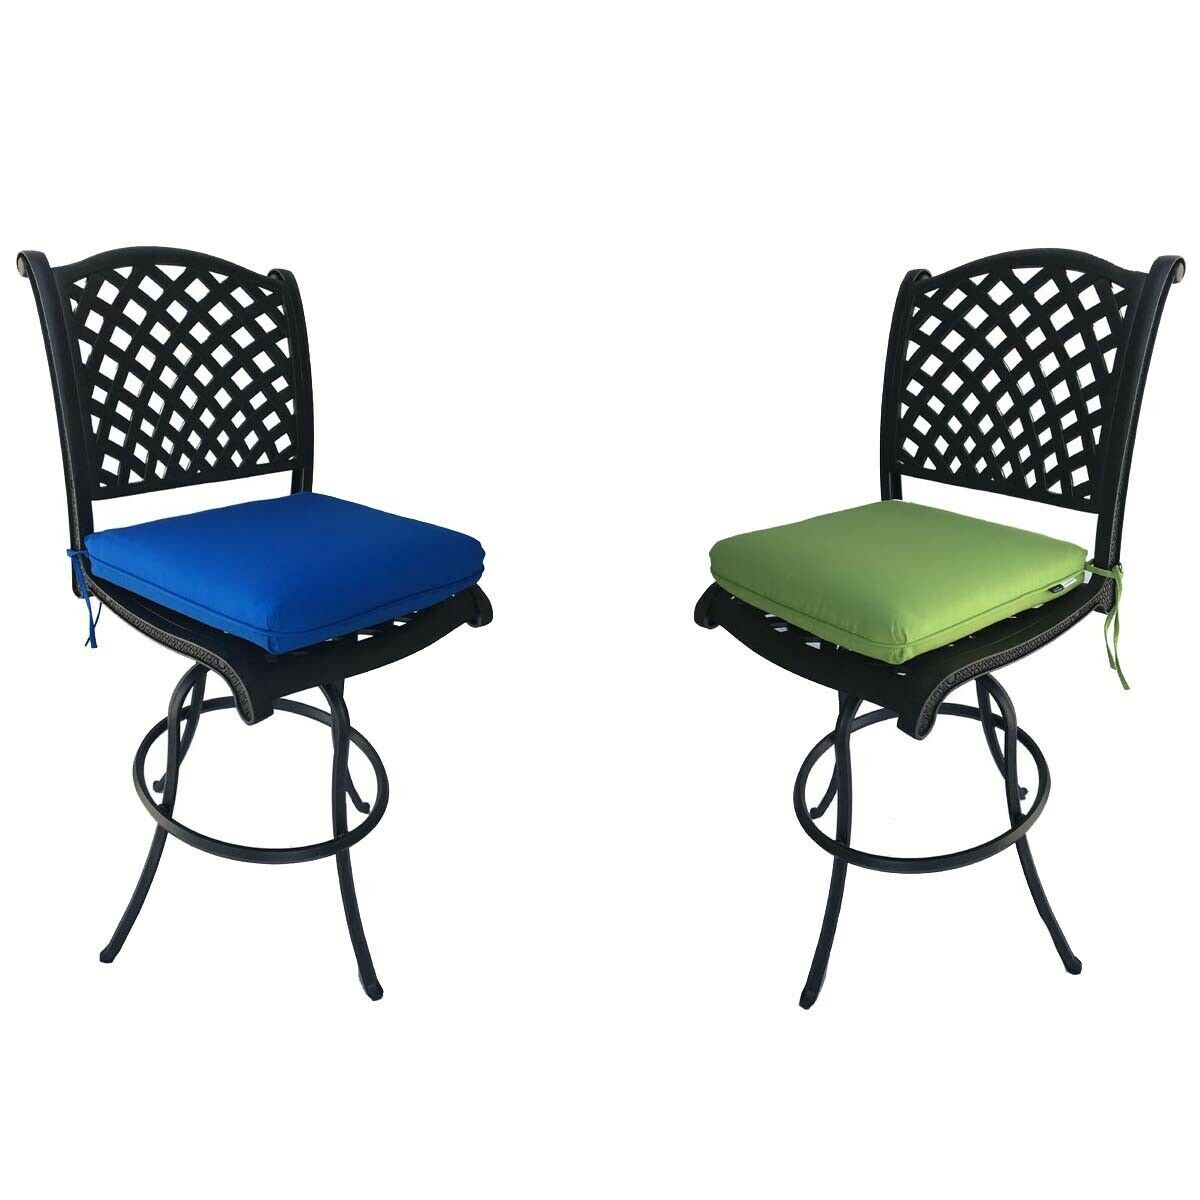 Patio Bar Stools Set of 2 Swivel Outdoor Furniture Cast Aluminum Sunbrella Seats